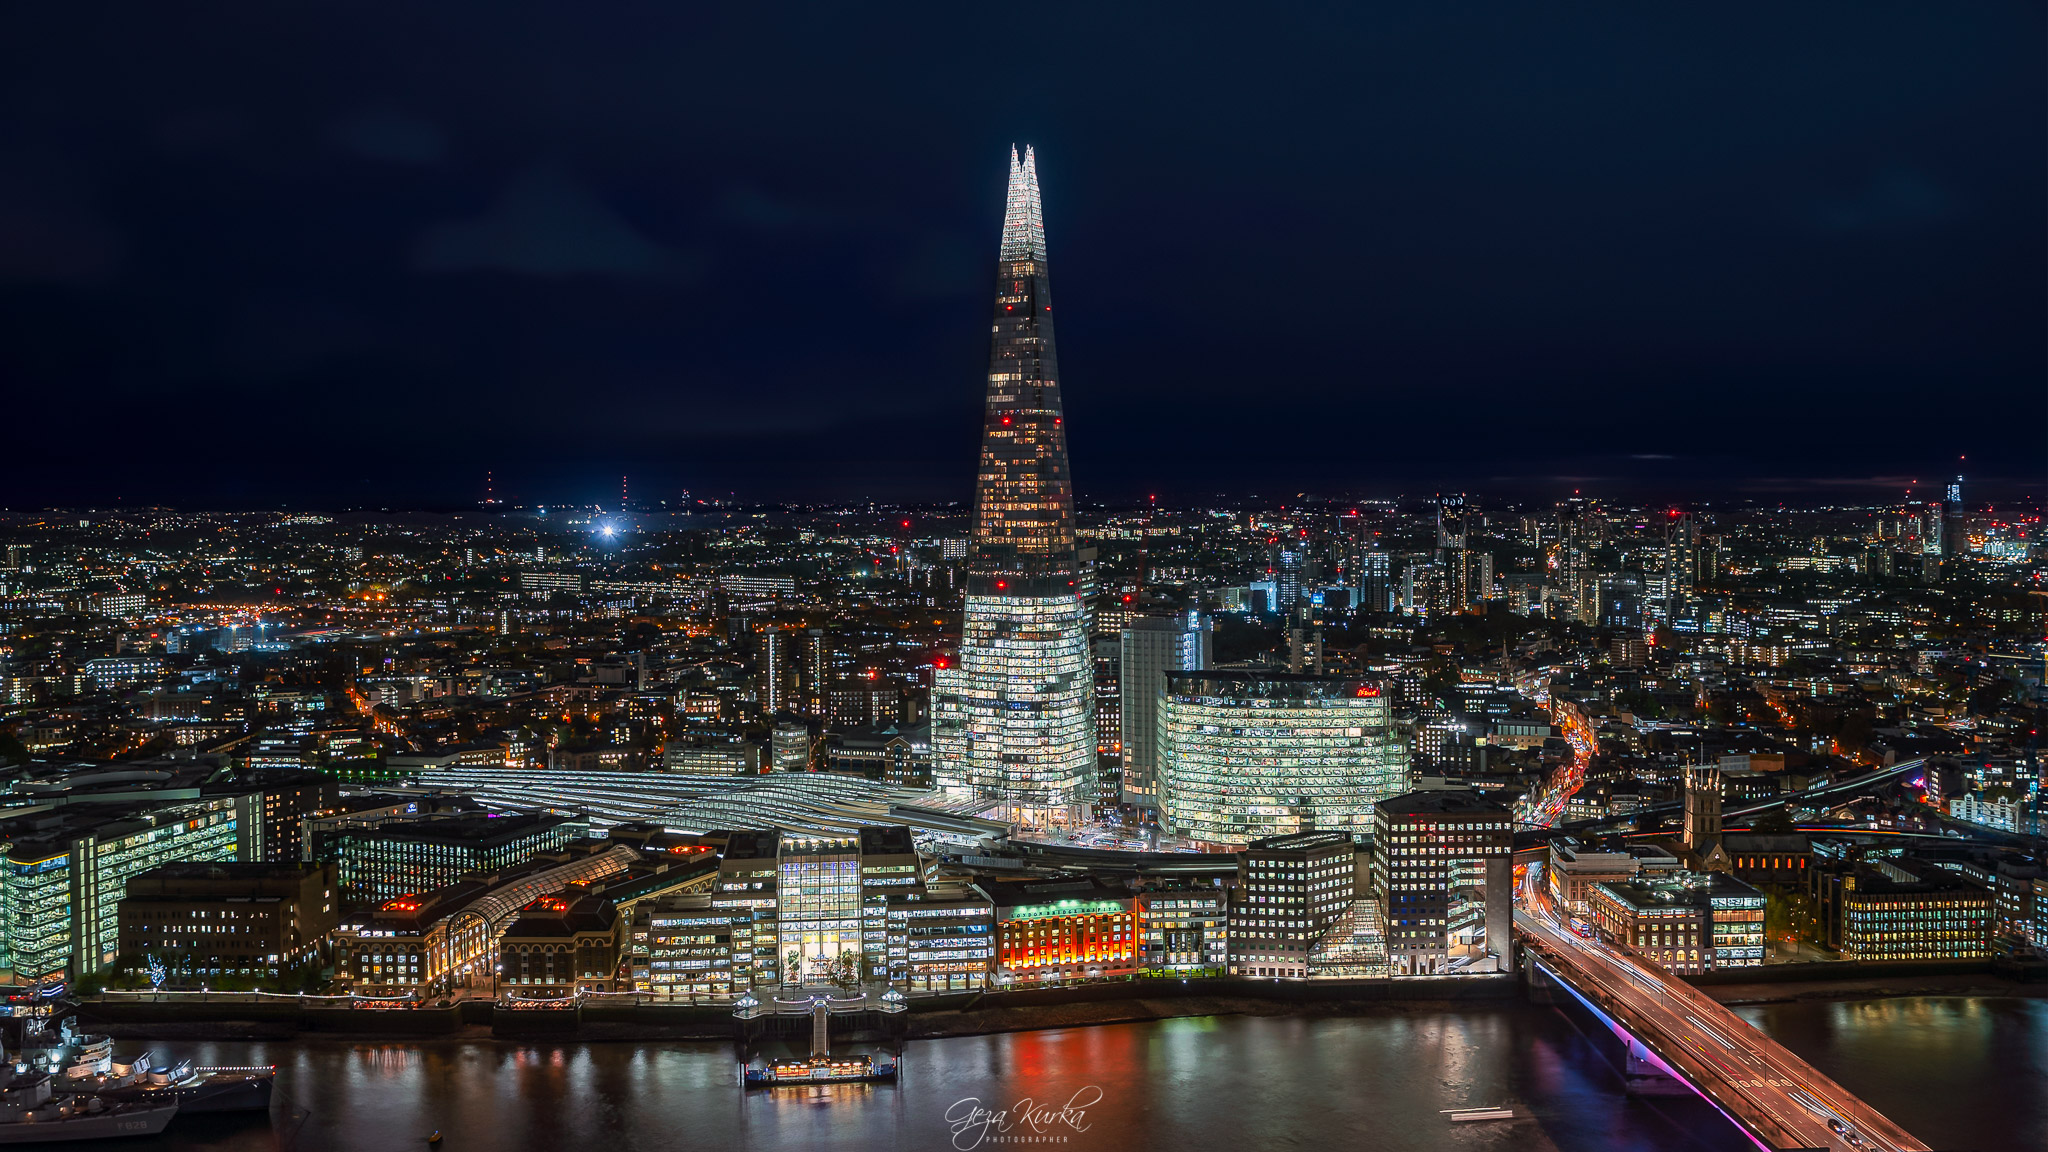 Night cityscape about London from sky garden., United Kingdom